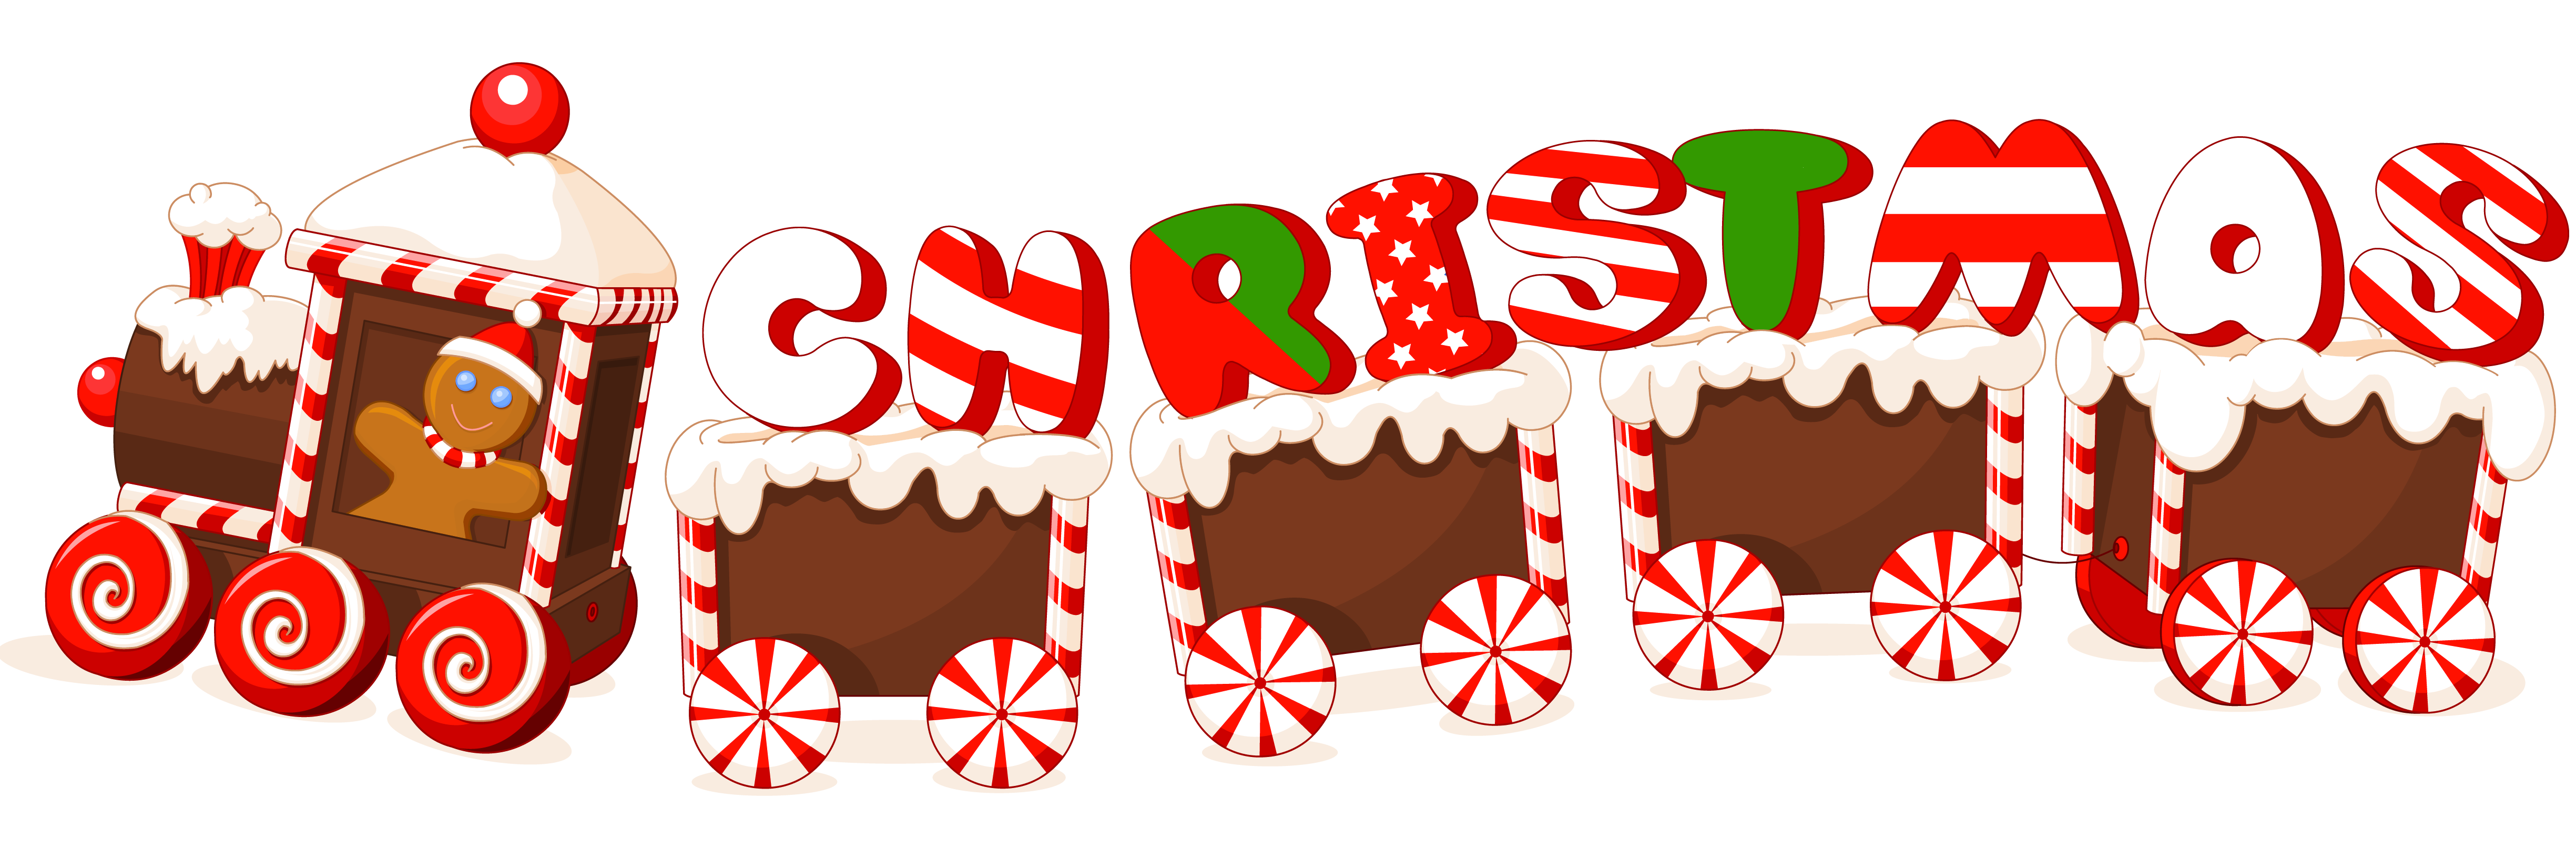 Merry Christmas Text PNG - 16088